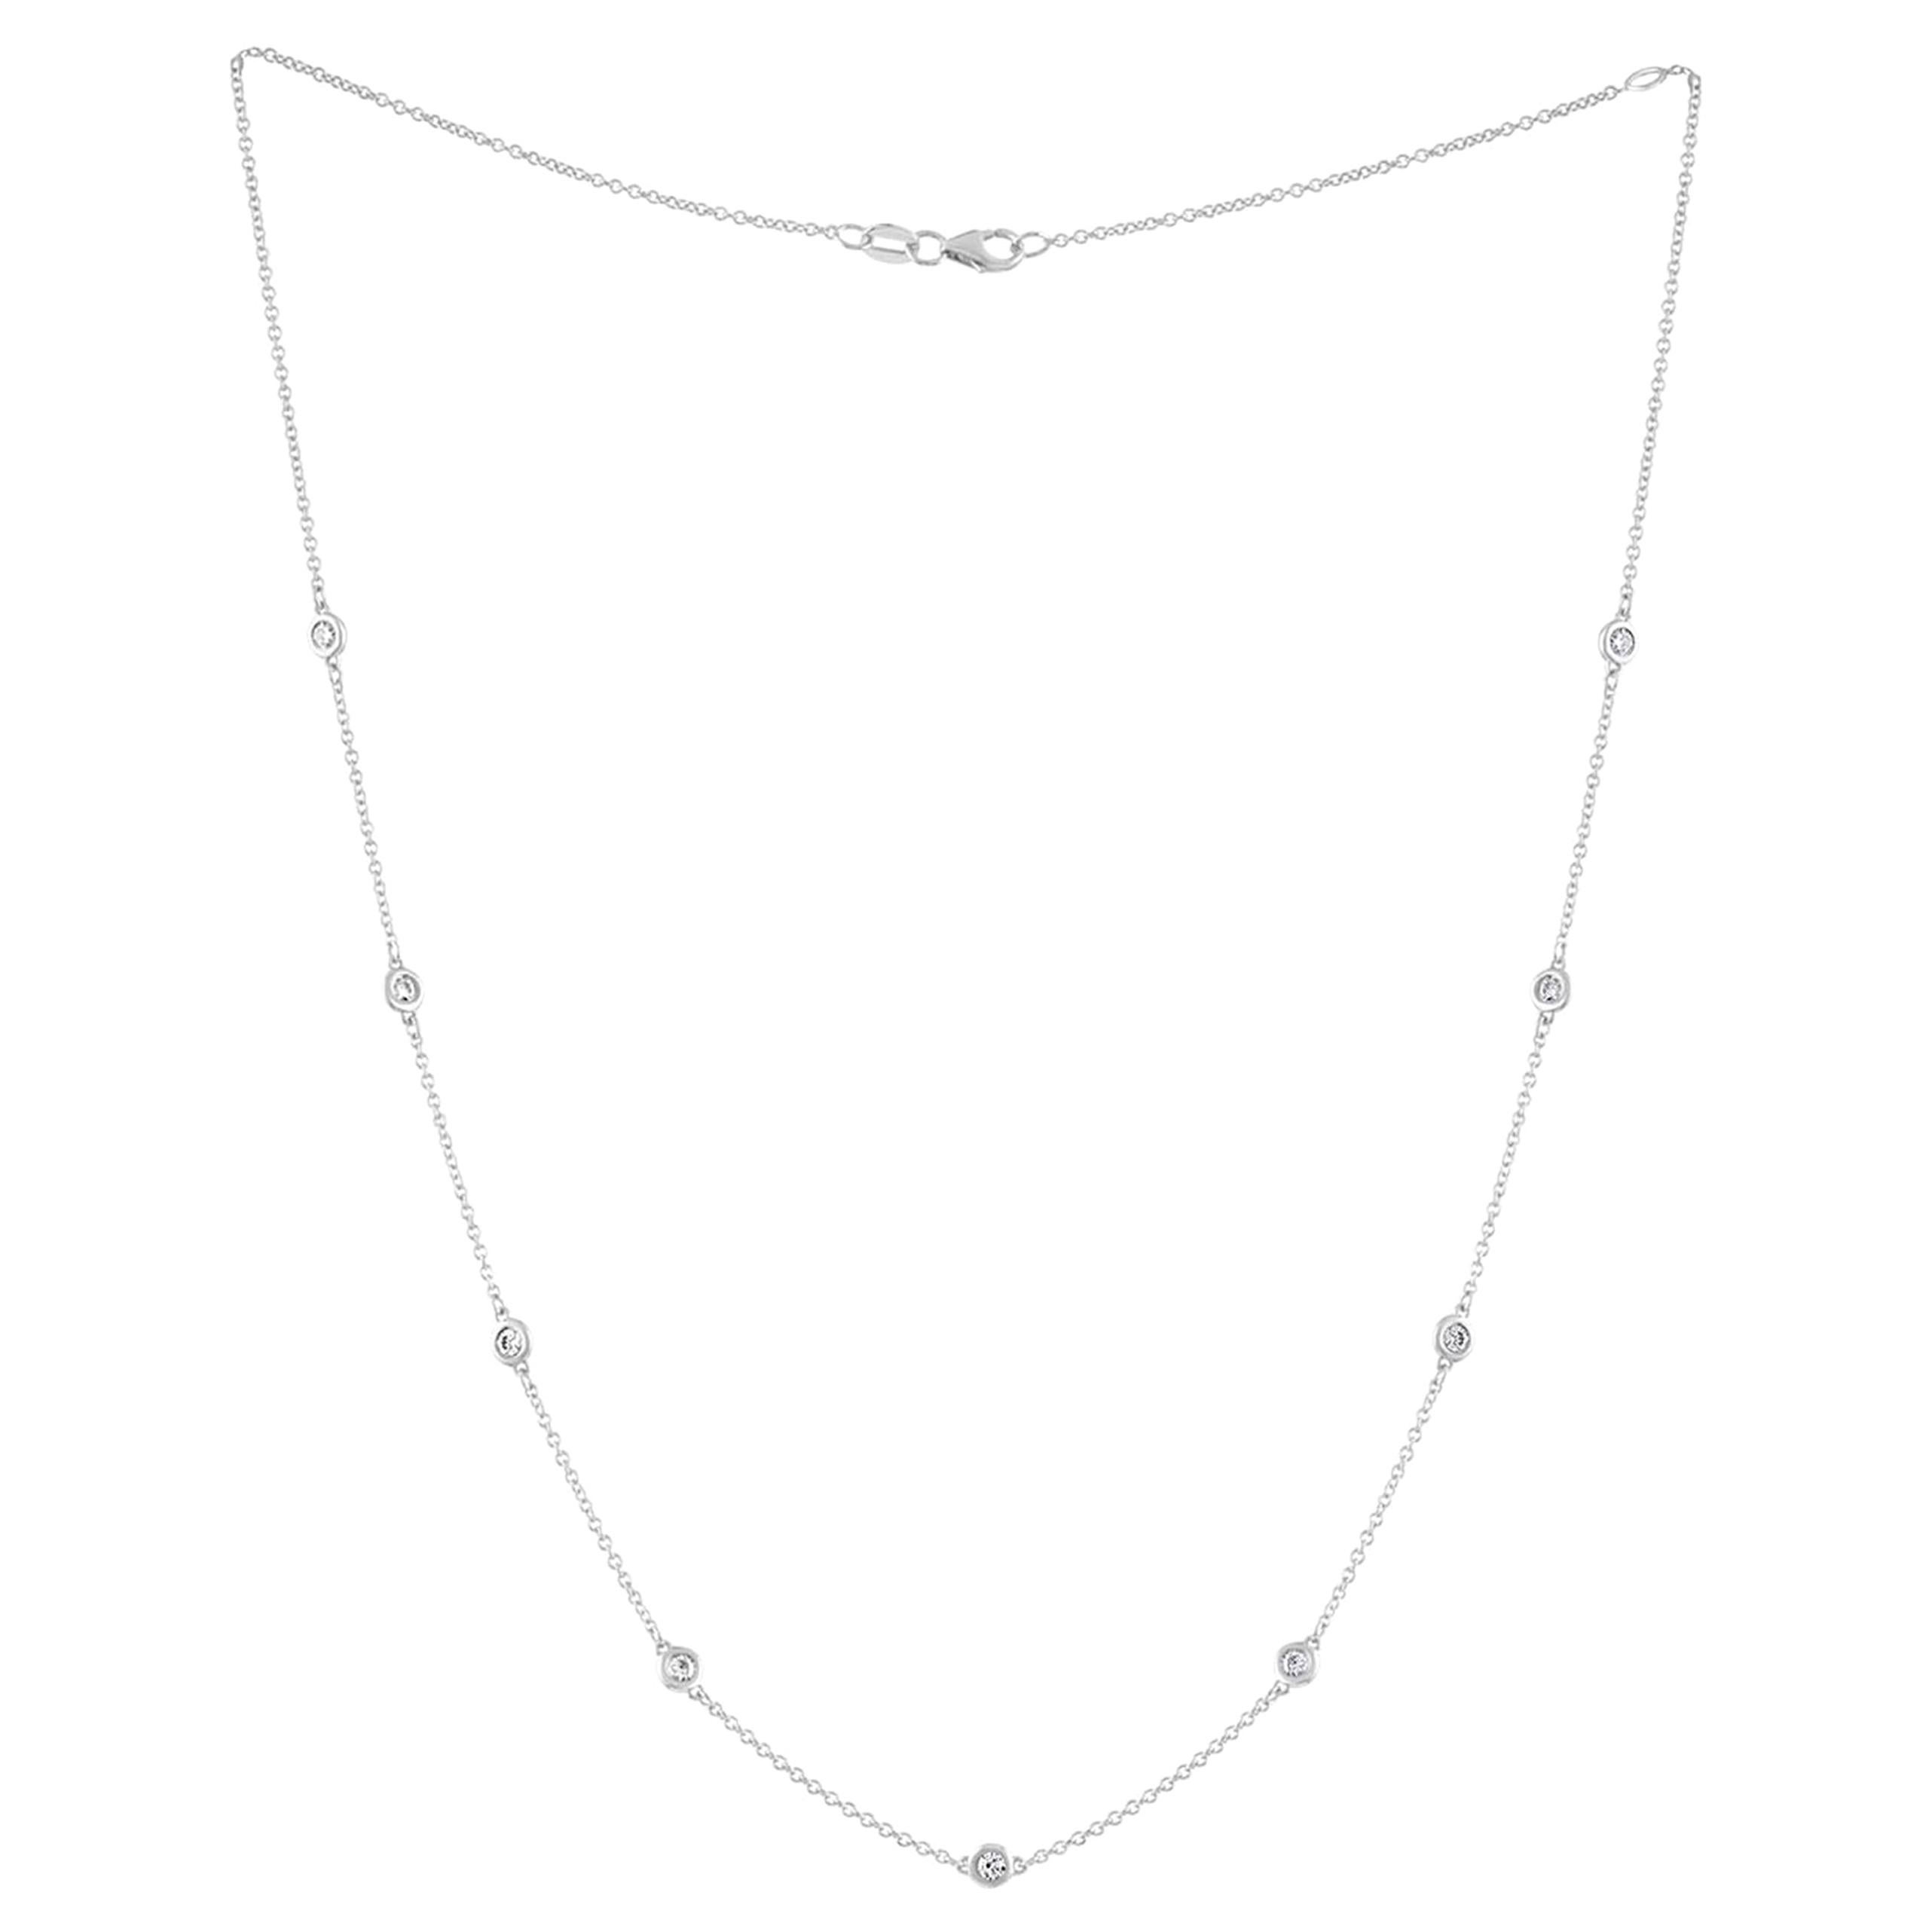 White Gold Necklace with 9 Features Cut Diamonds